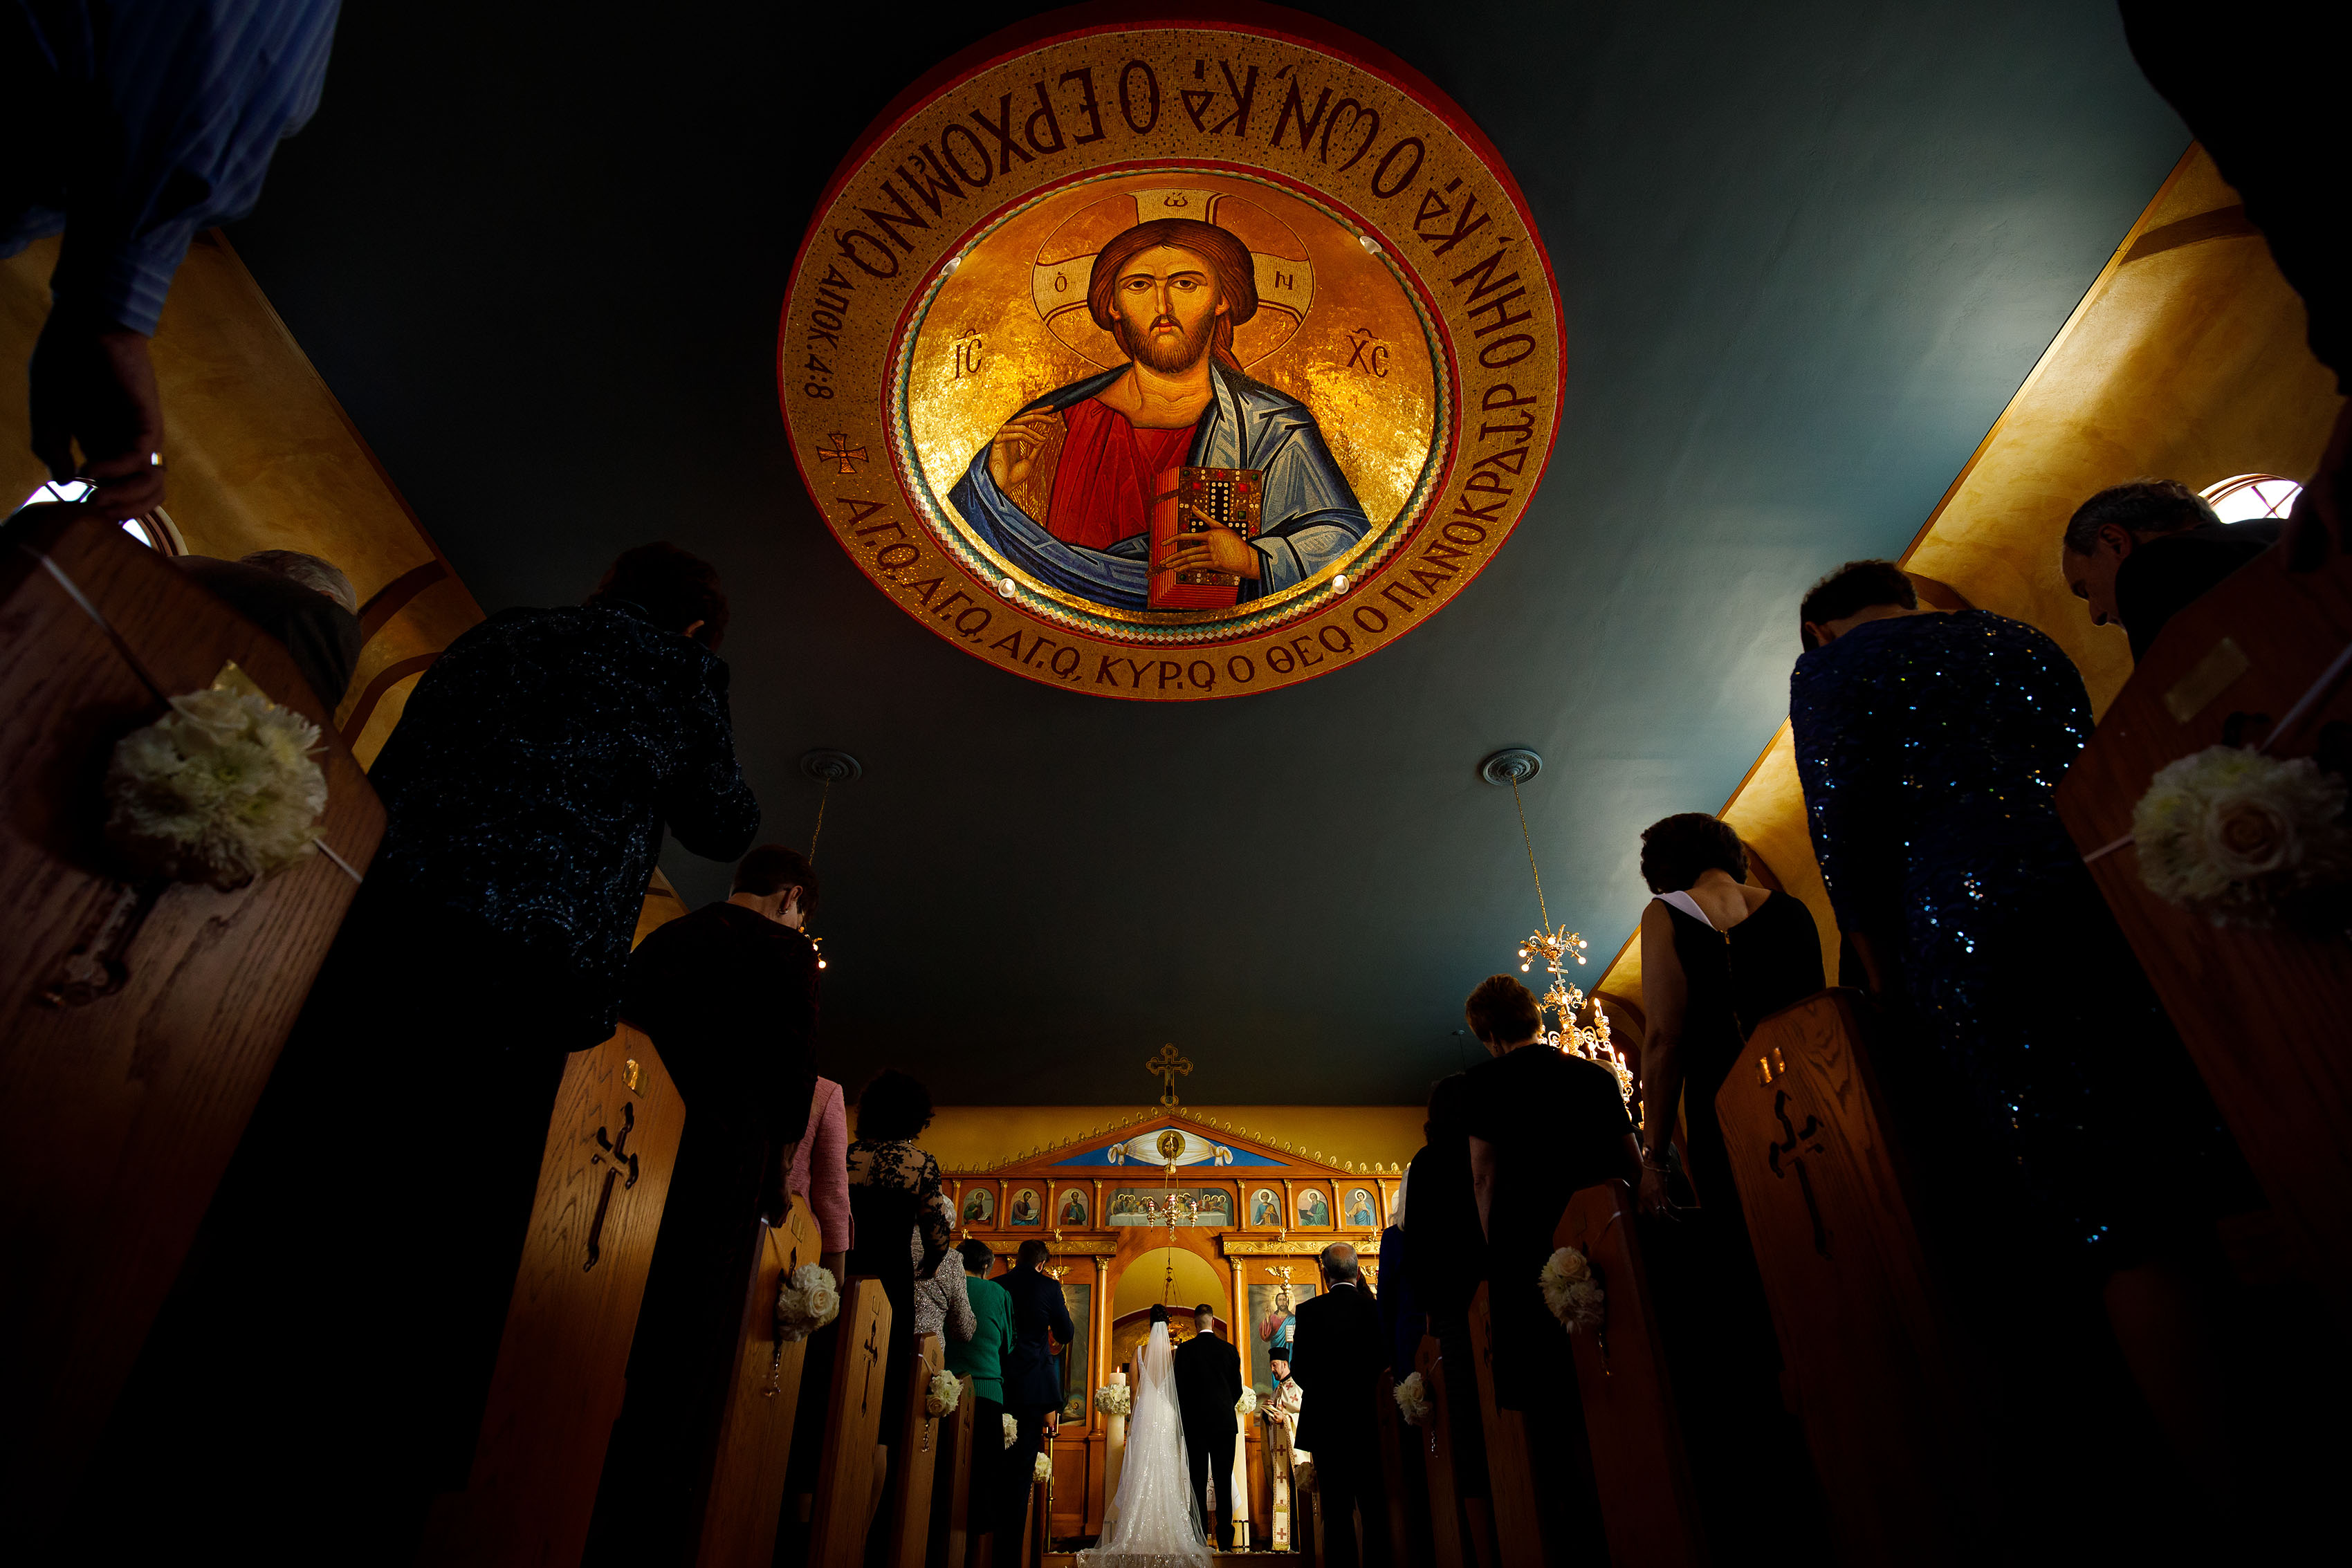 Inside Saint George Greek Orthodox Church in Albuquerque New Mexico during a wedding ceremony